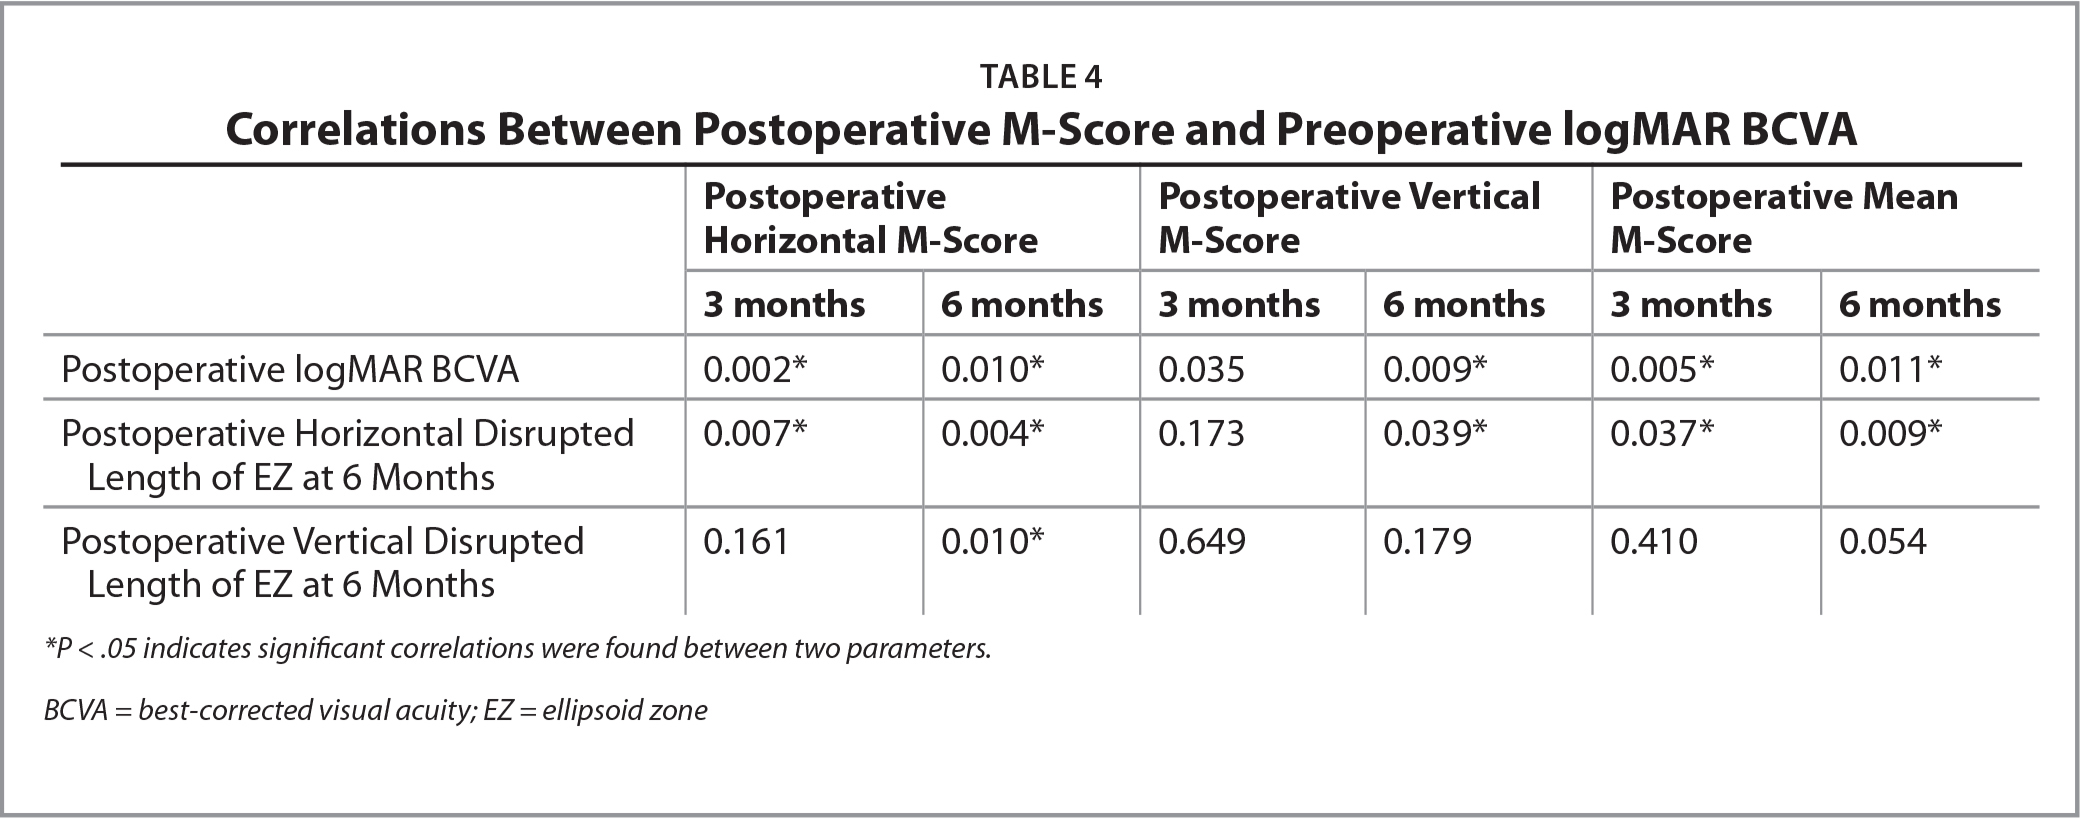 Correlations Between Postoperative M-Score and Preoperative logMAR BCVA